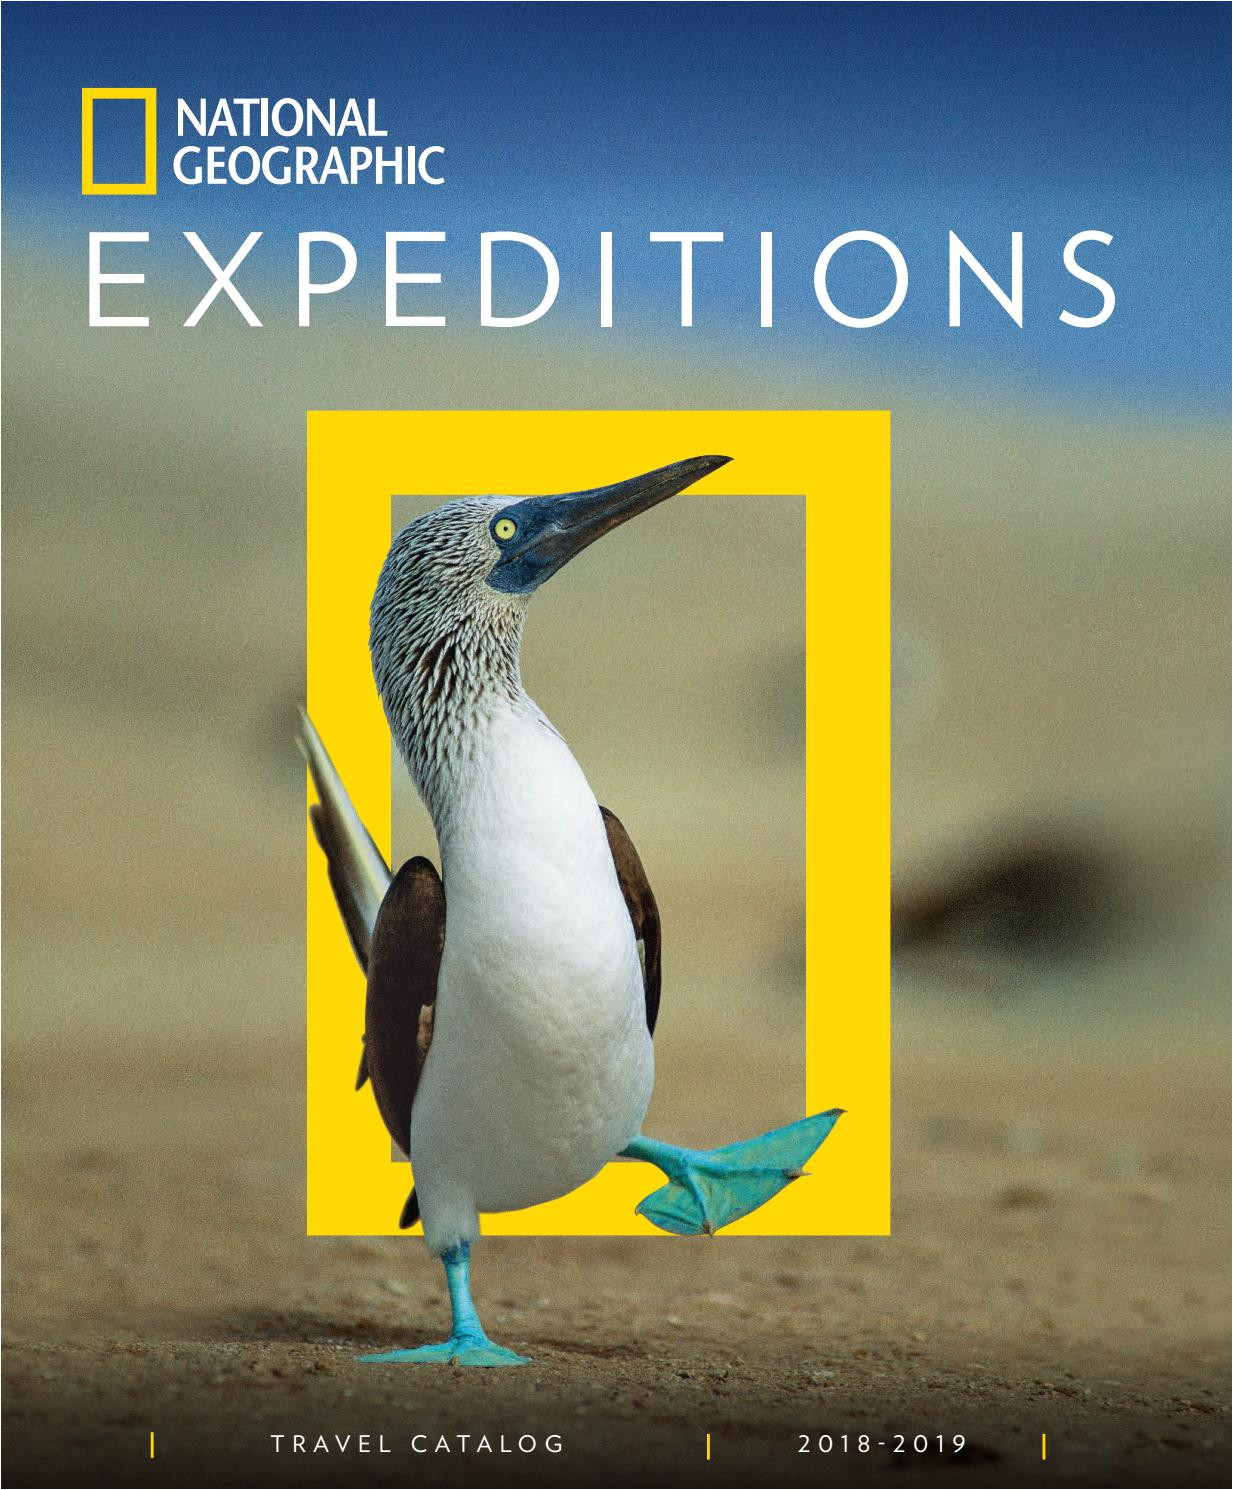 2018 2019 national geographic expeditions catalog by national geographic expeditions issuu